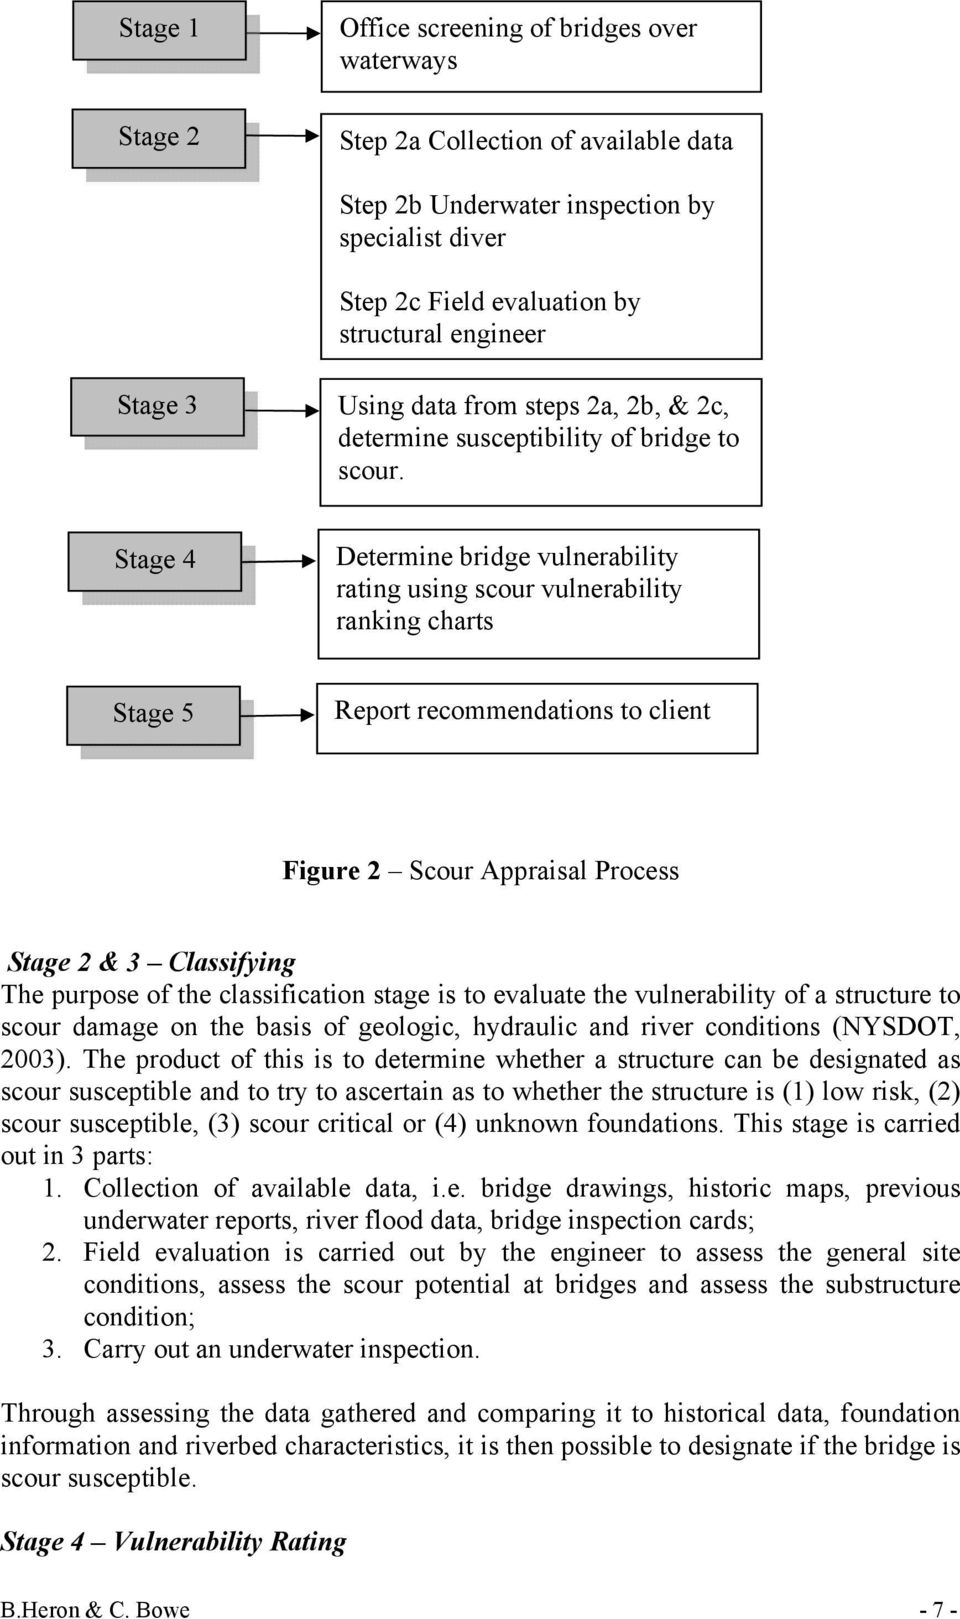 Stage 4 Determine bridge vulnerability rating using scour vulnerability ranking charts Stage 5 Report recommendations to client Figure 2 Scour Appraisal Process Stage 2 & 3 Classifying The purpose of